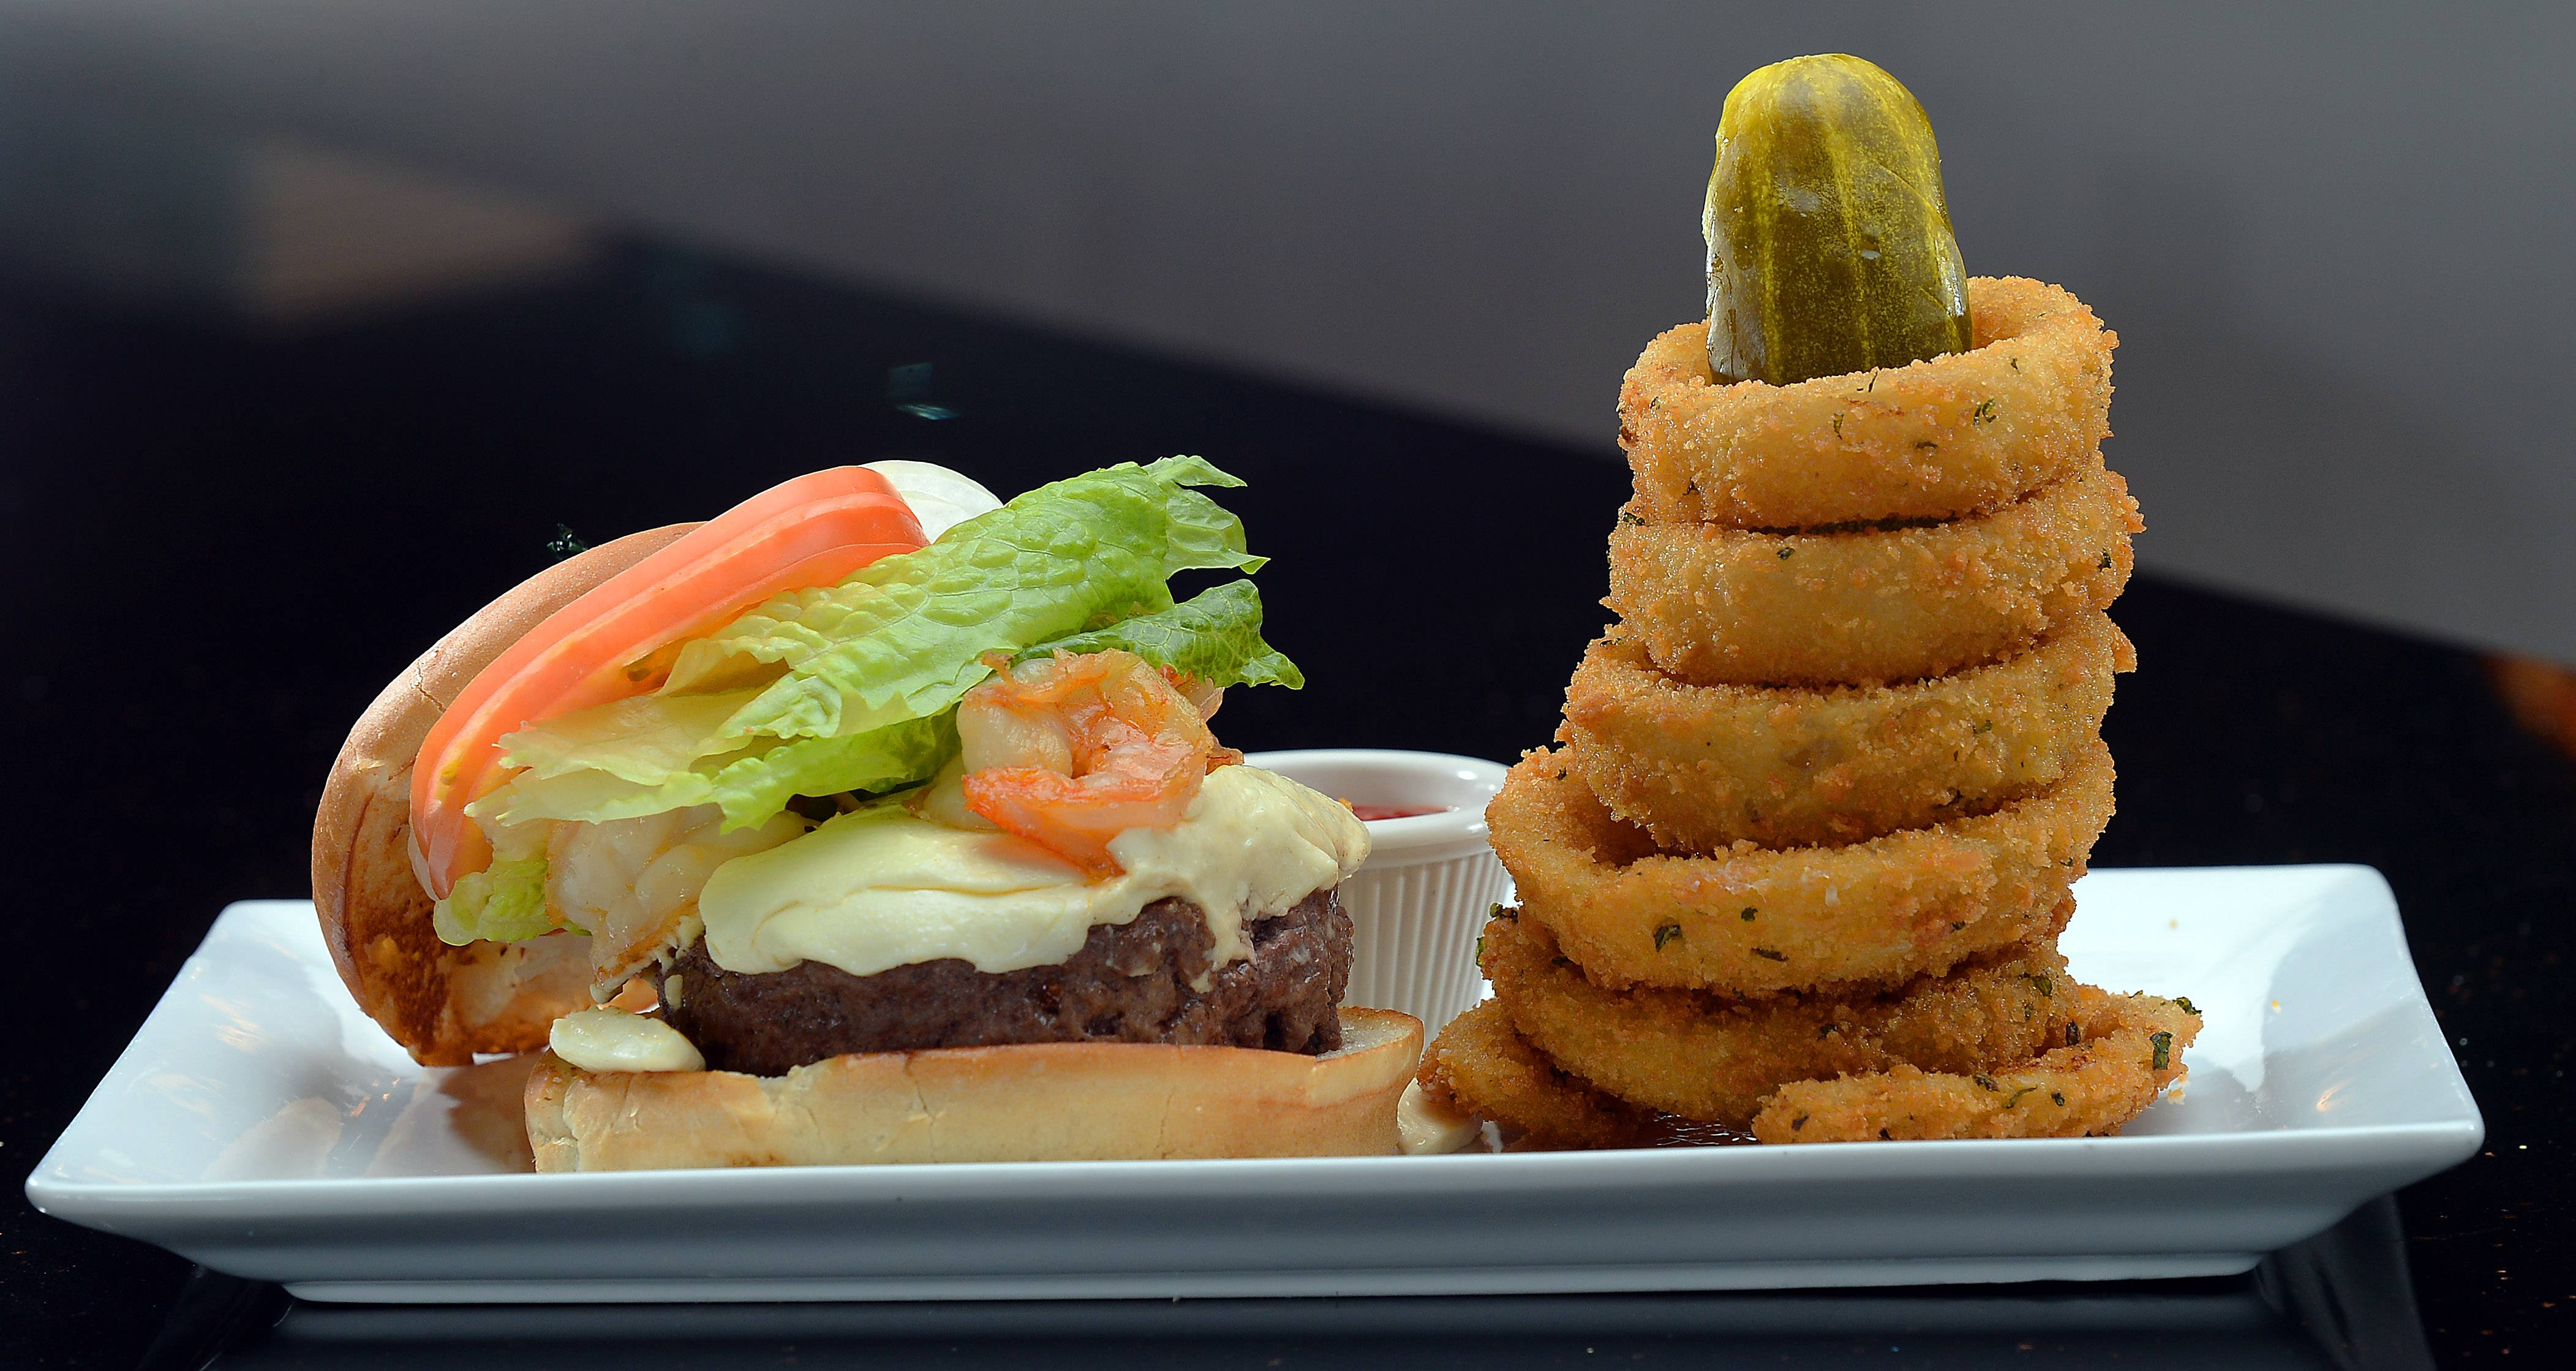 Chef Cristiano Bassani serves gourmet burgers and pizza at Big Chef Burgers in Schaumburg.